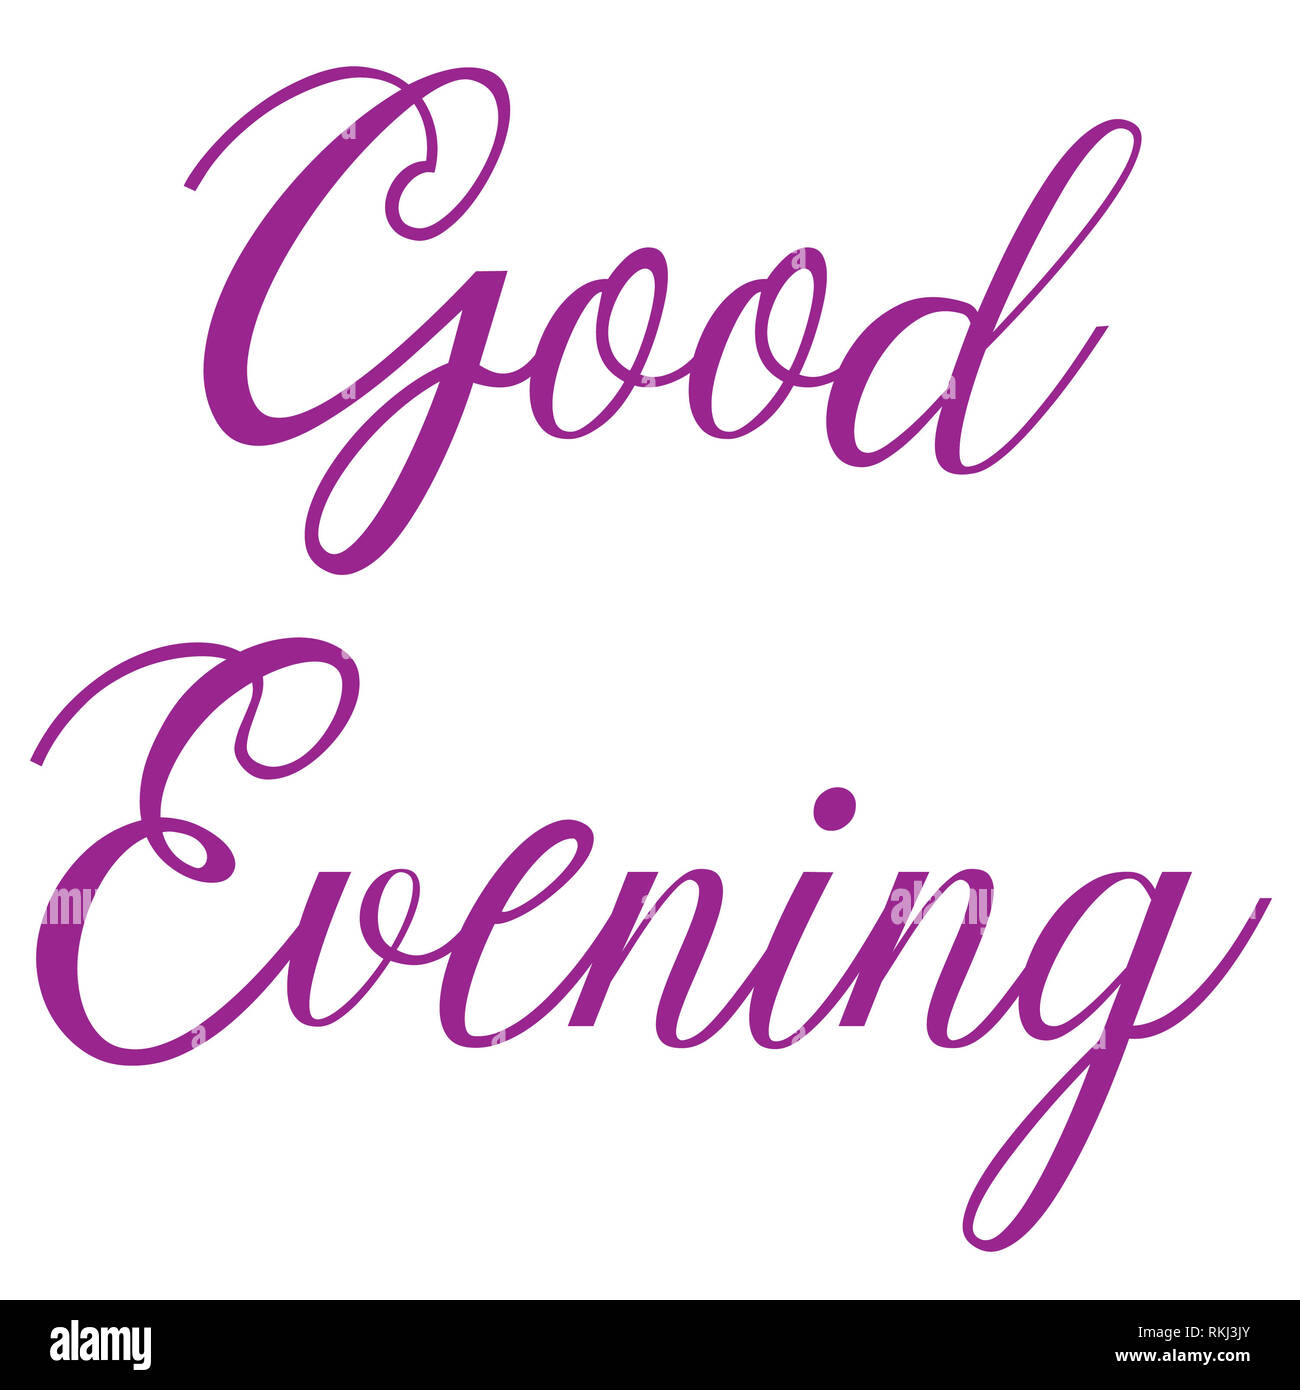 Good evening greetings with style and fashion - Stock Image